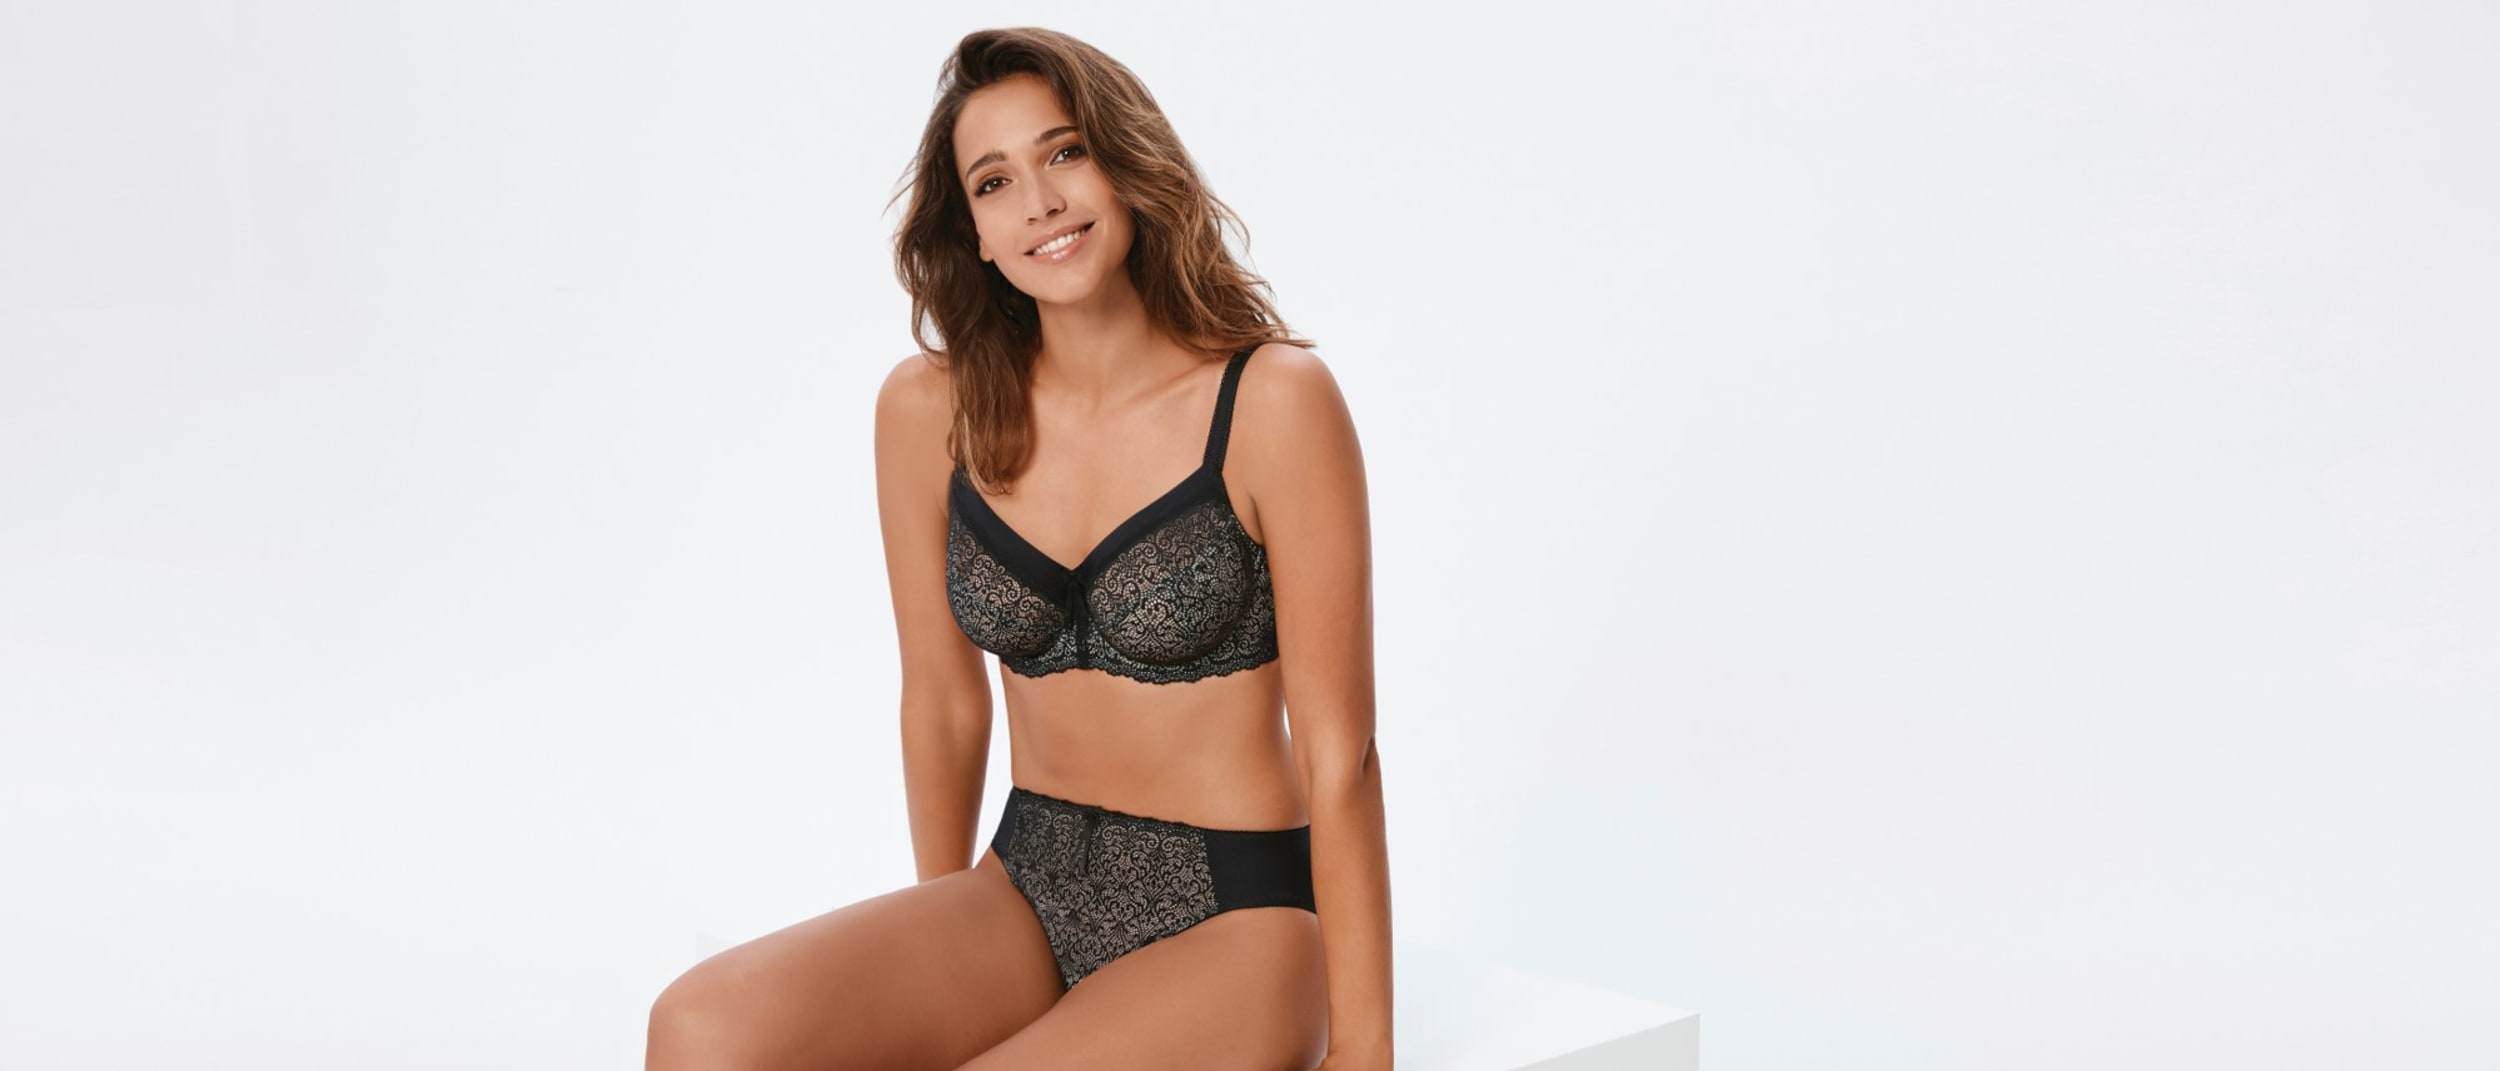 Find your Perfect Fit at Bendon with 40% off all Bras